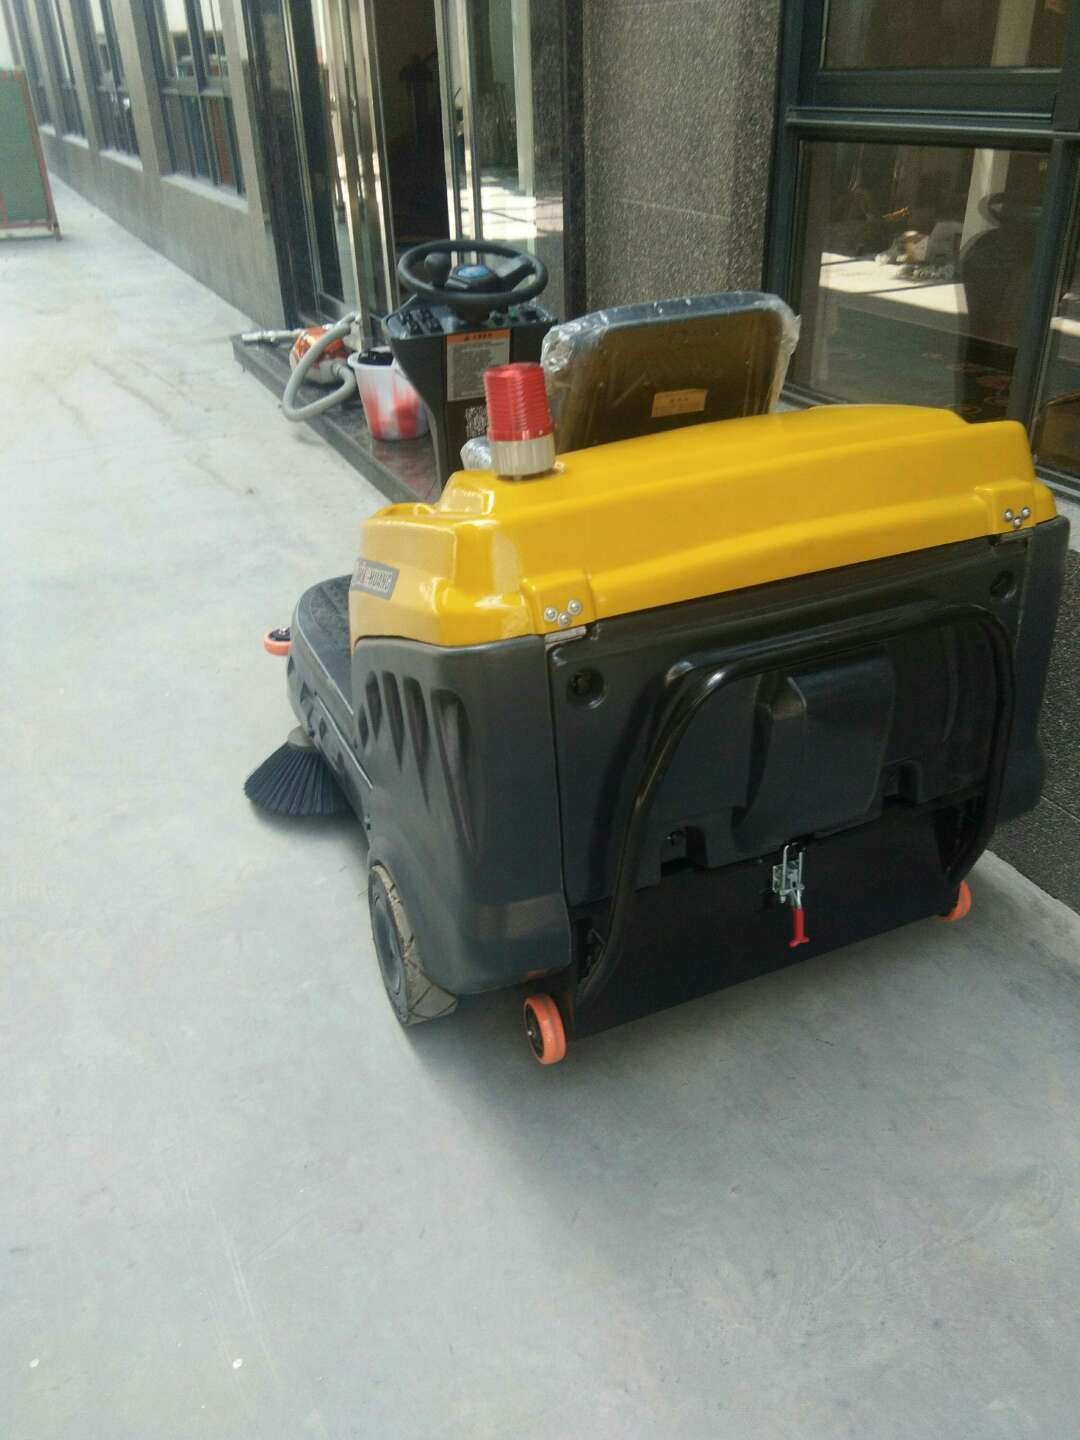 Minchuang C120 electric driving sweeper service in the community